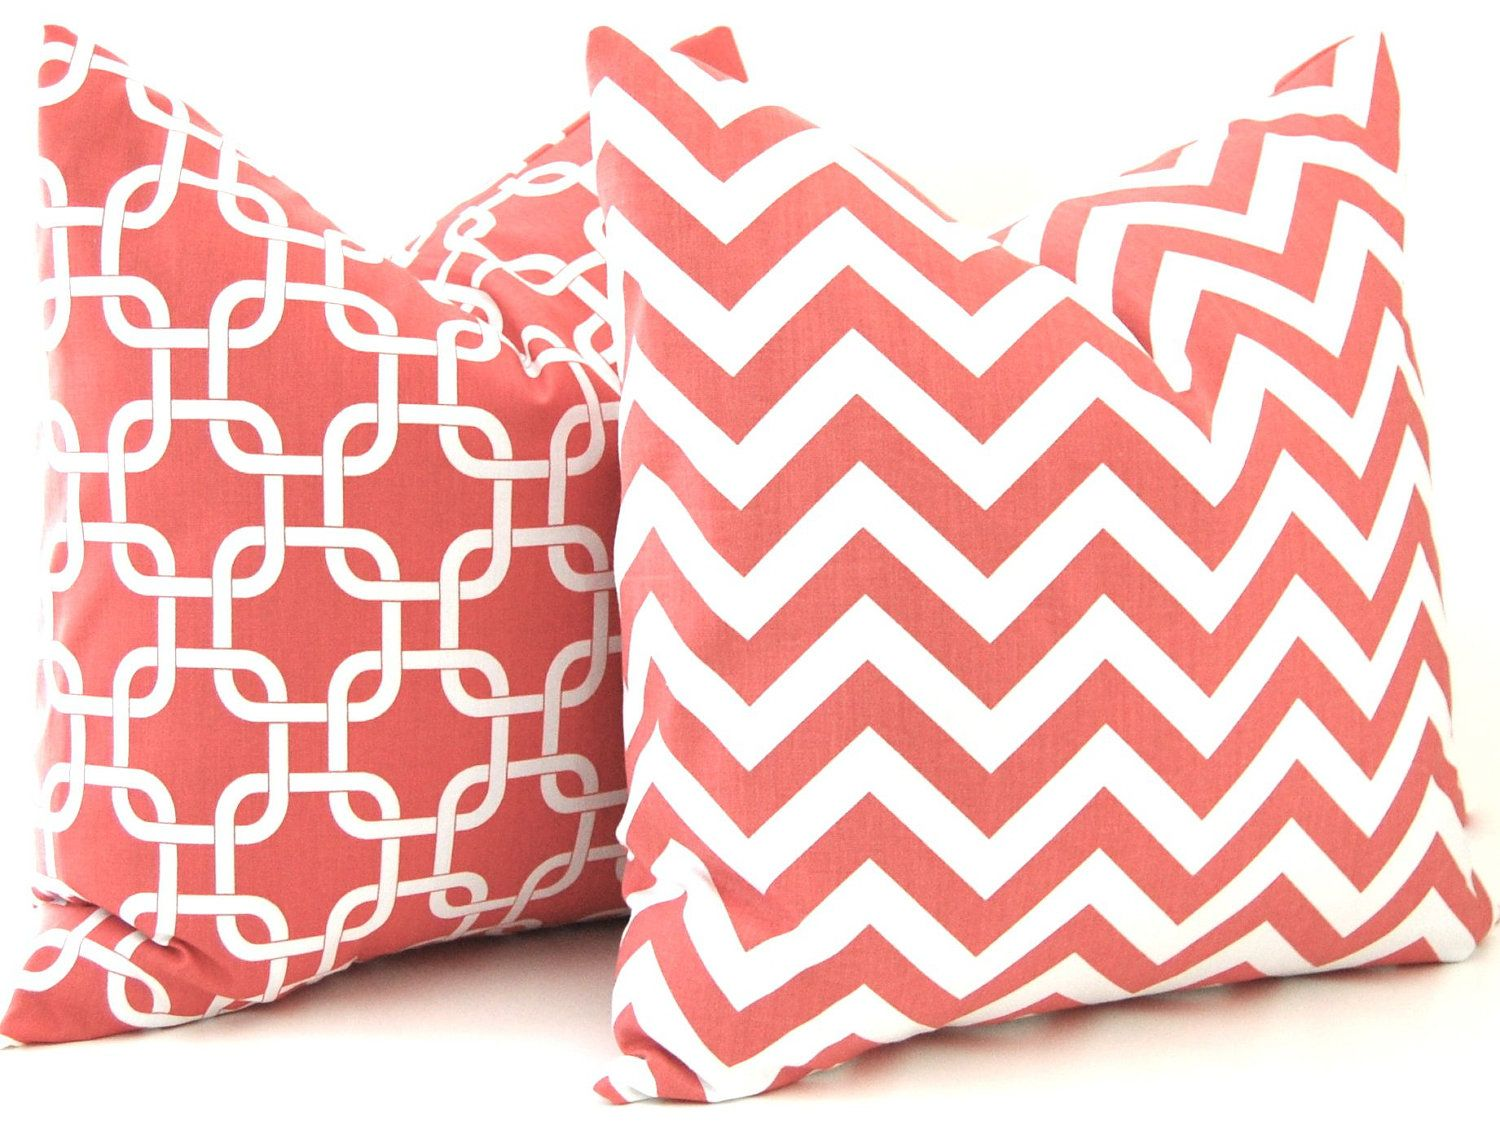 Coral Pillows Decorative Throw Pillow Covers Chevron Pillows 17 x ...